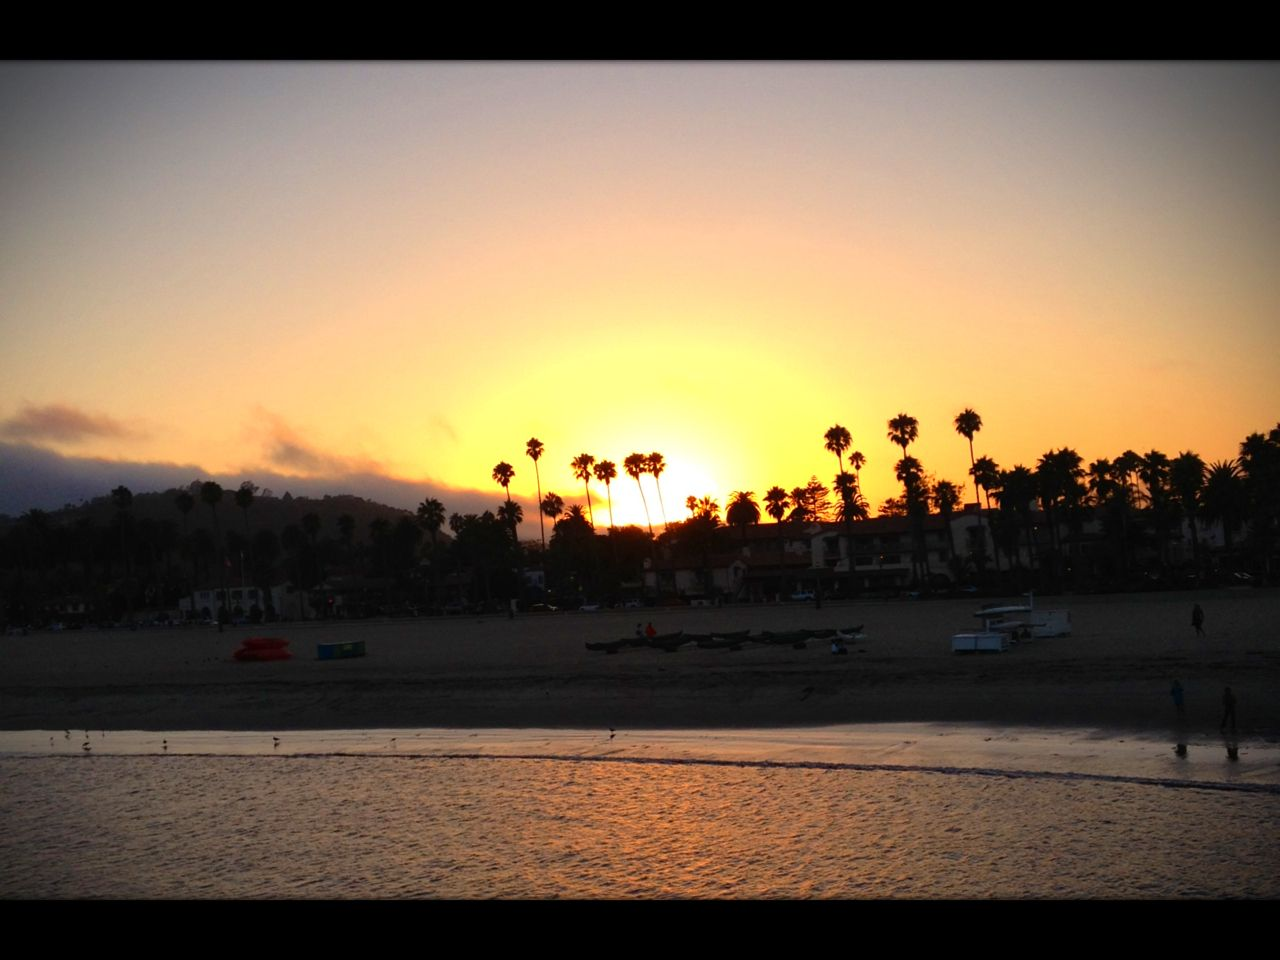 #beach #california #sunset #santabarbara